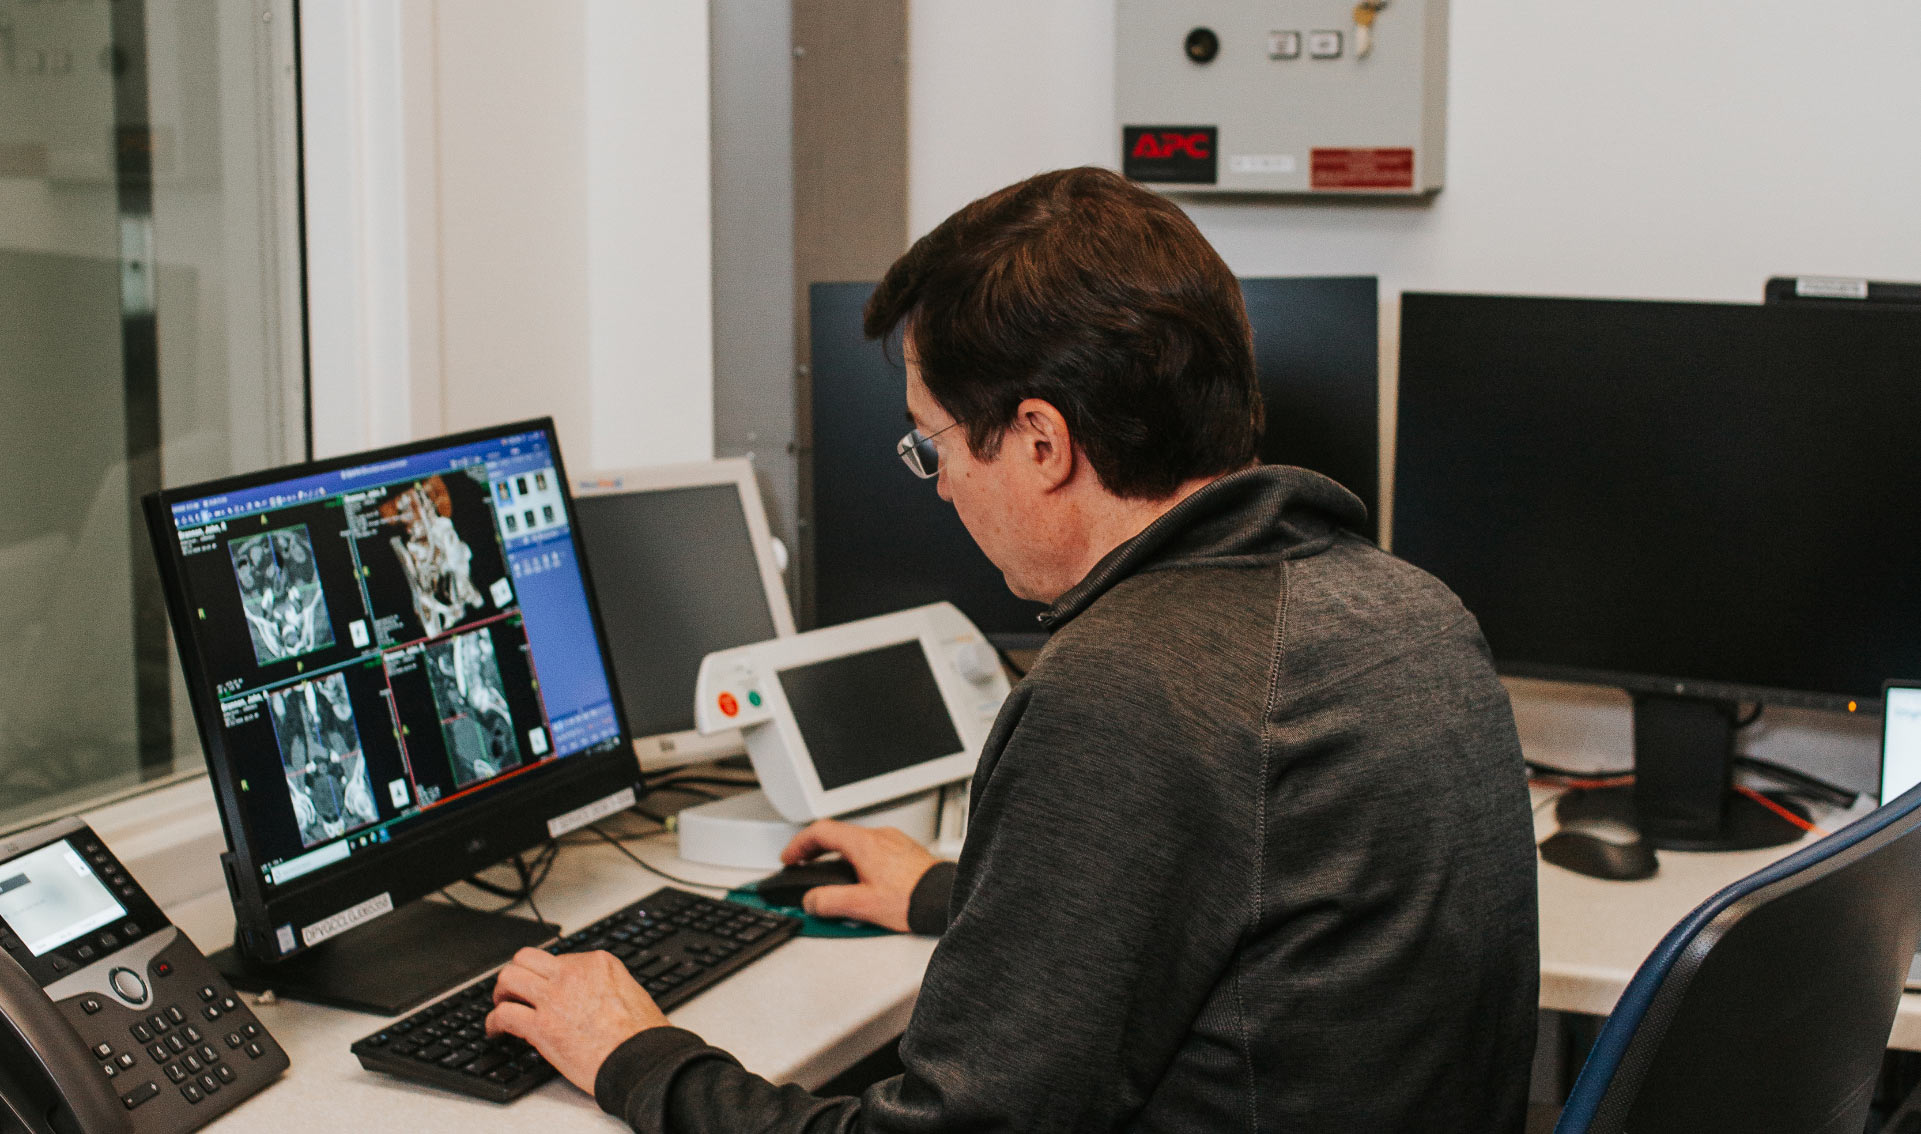 Dr. Gurley, dressed in a gray collared long-sleeve pullover, with his back facing the camera as he examines x-rays on a computer monitor.